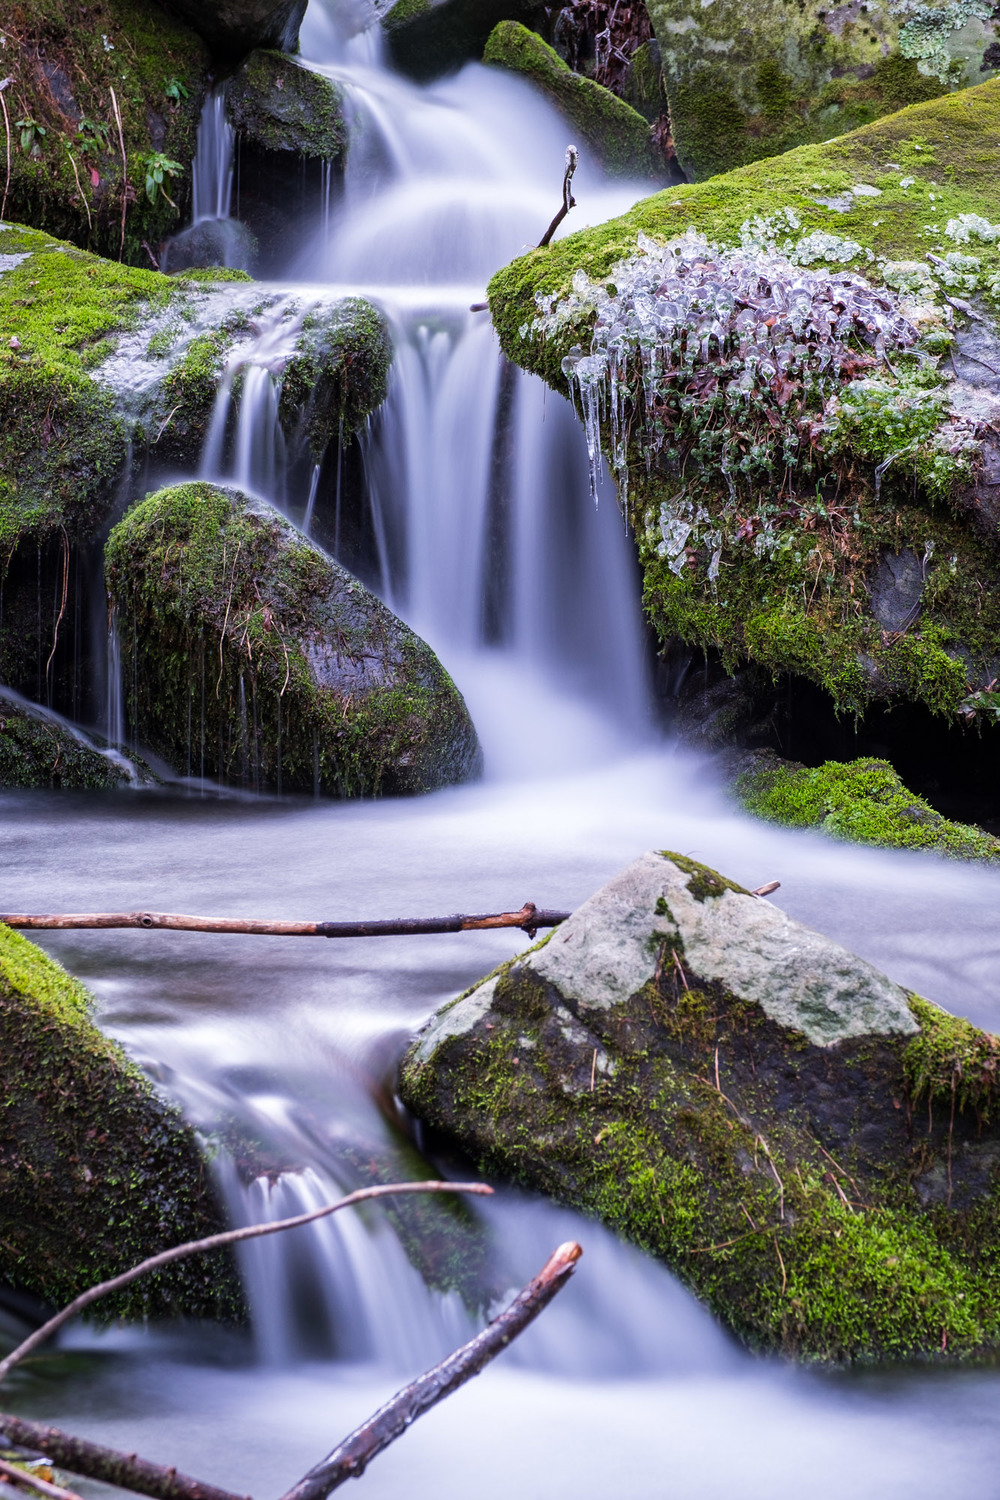 I do love blurring the water in little streams (this is accomplished with a neutral density filter).